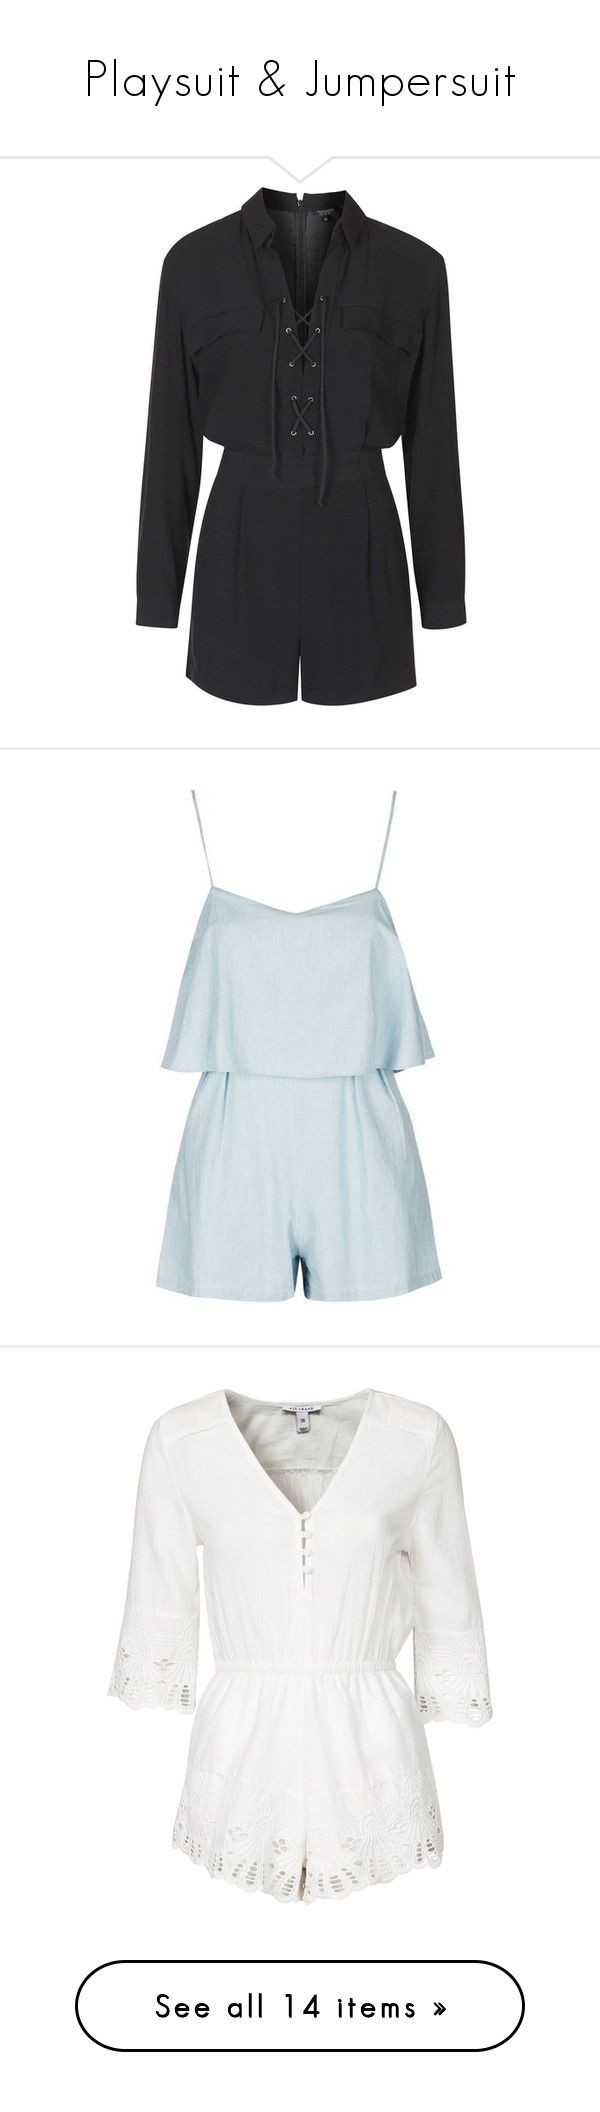 """""""Playsuit & Jumpersuit"""" by otrafter ❤ liked on Polyvore featuring jumpsuits, rompers, playsuit, topshop, romper, black, long-sleeve romper, romper jumpsuit, long sleeve jumpsuit and topshop jumpsuit"""